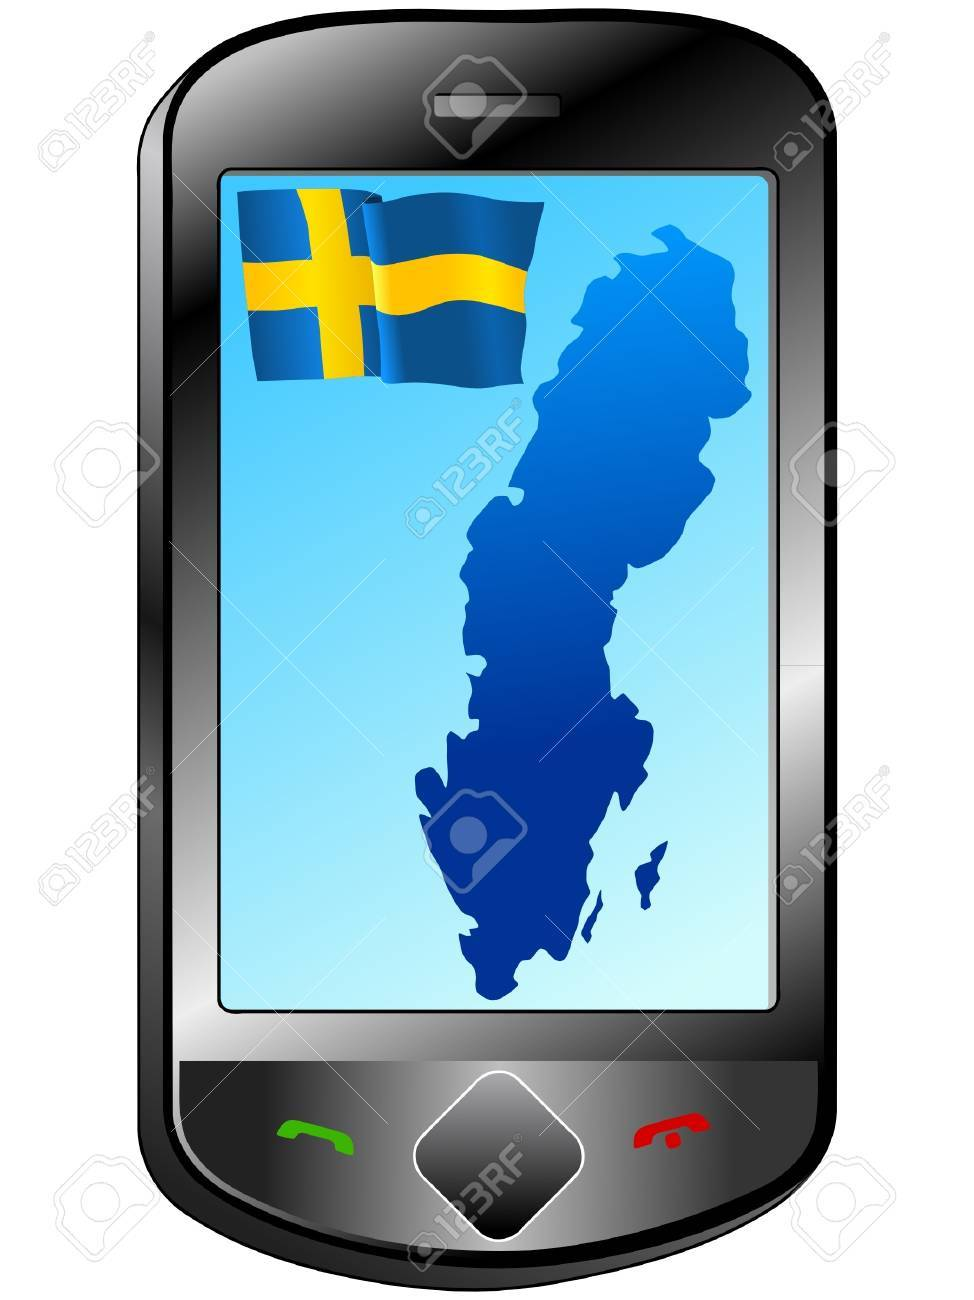 Connection with Sweden Stock Vector - 11833077